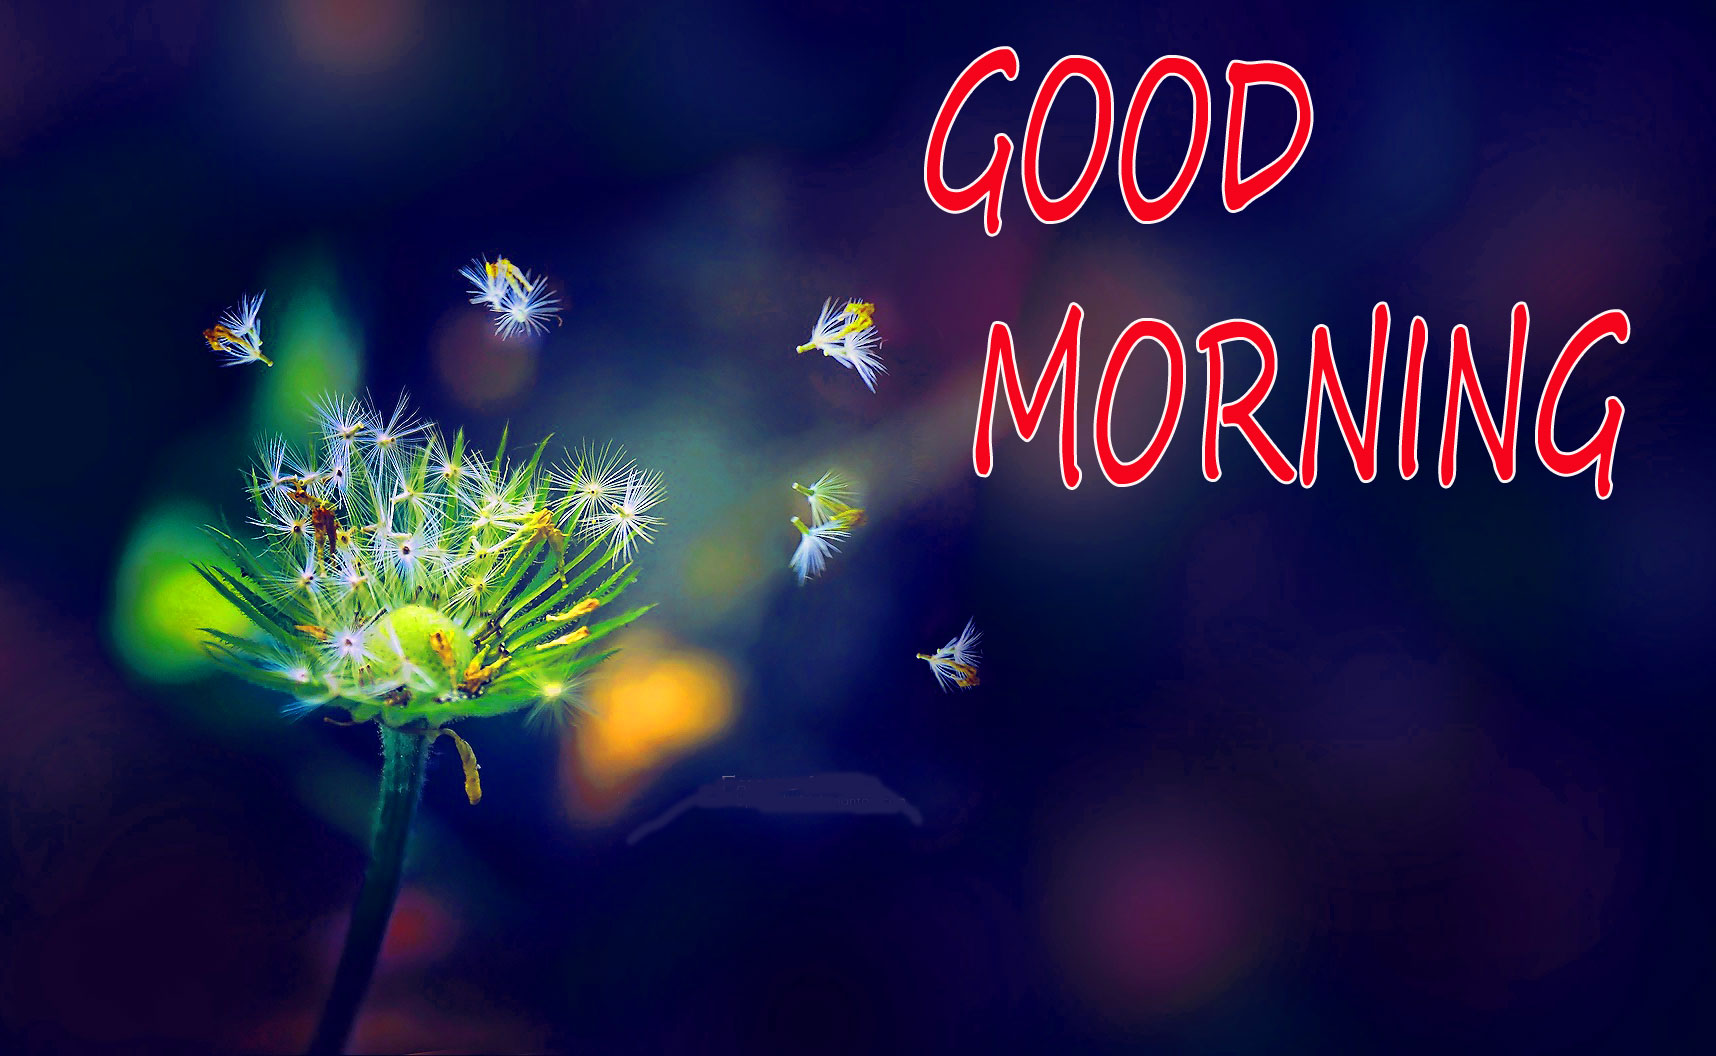 GOOD MORNING IMAGE WITH BEAUTIFUL FLOWERS NATURE WALLPAPER PHOTO PICTURES HD FREE